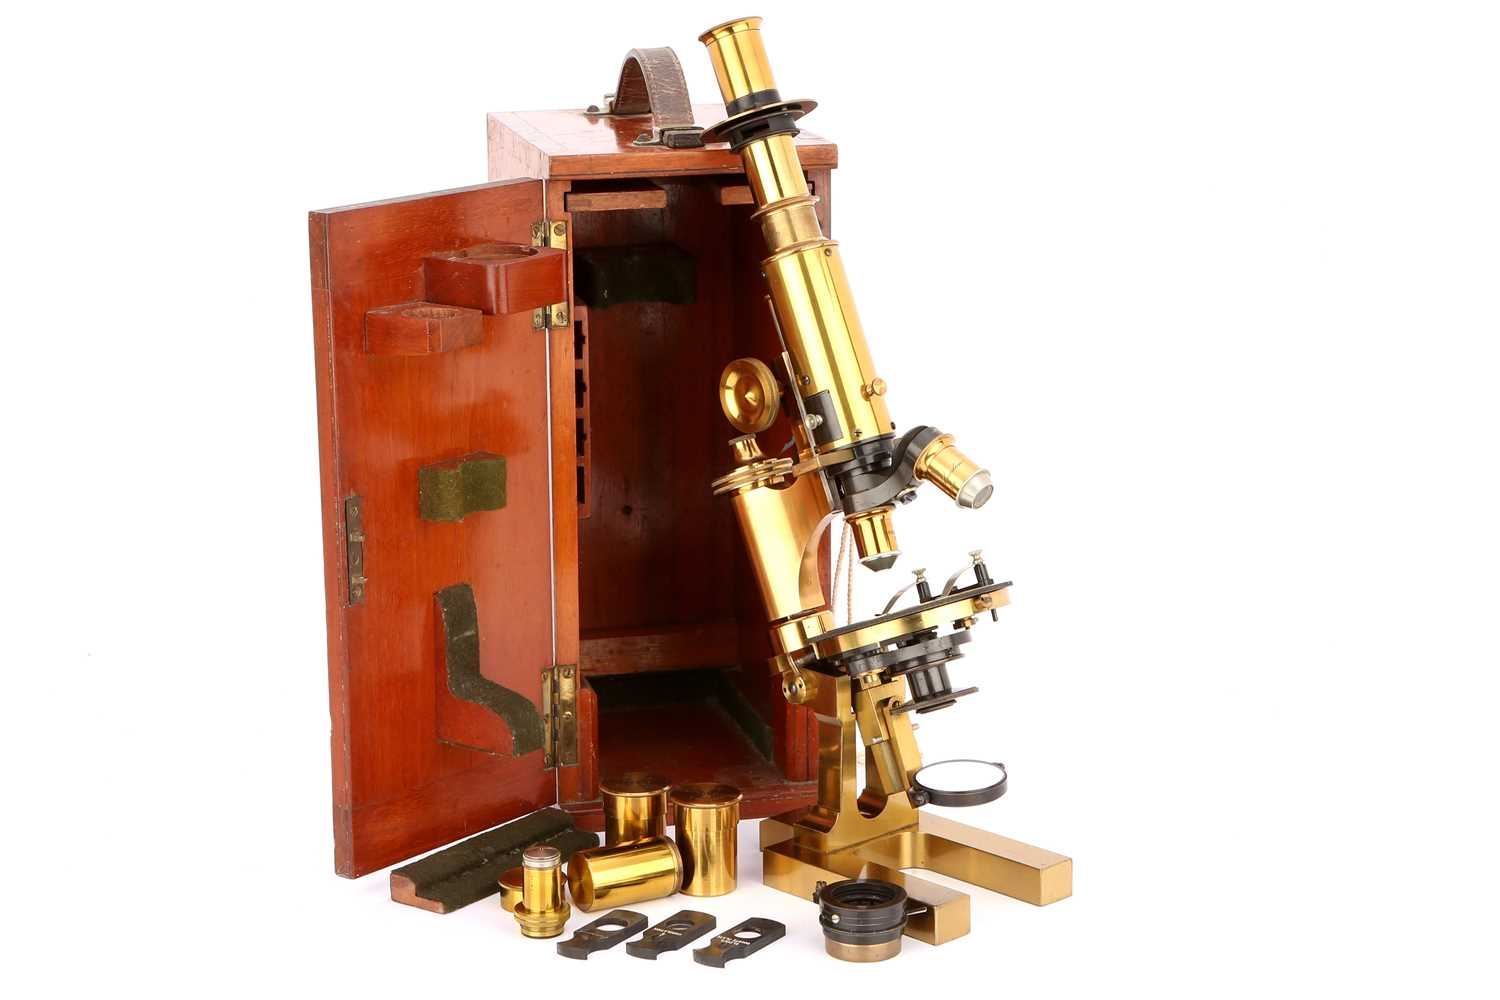 Lot 11-A Fine Petrological Microscope By Ross